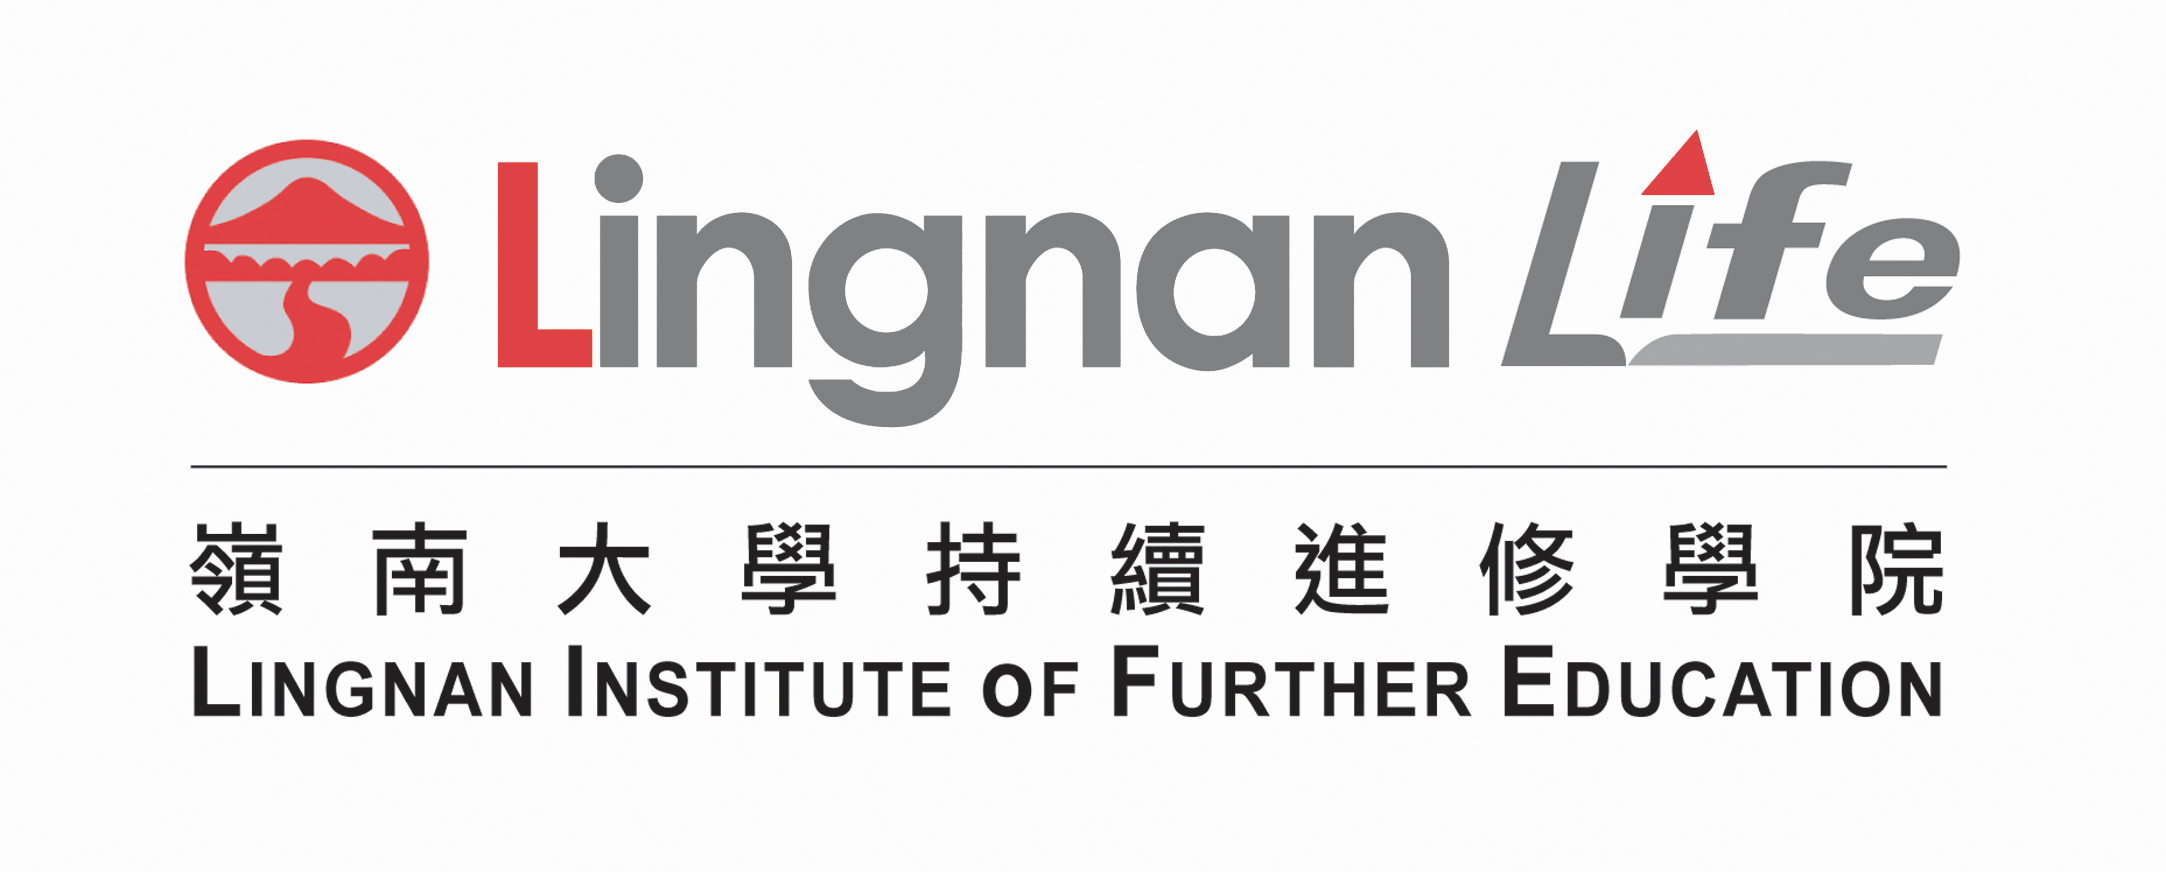 Lingnan Institute of Further Education (LIFE)